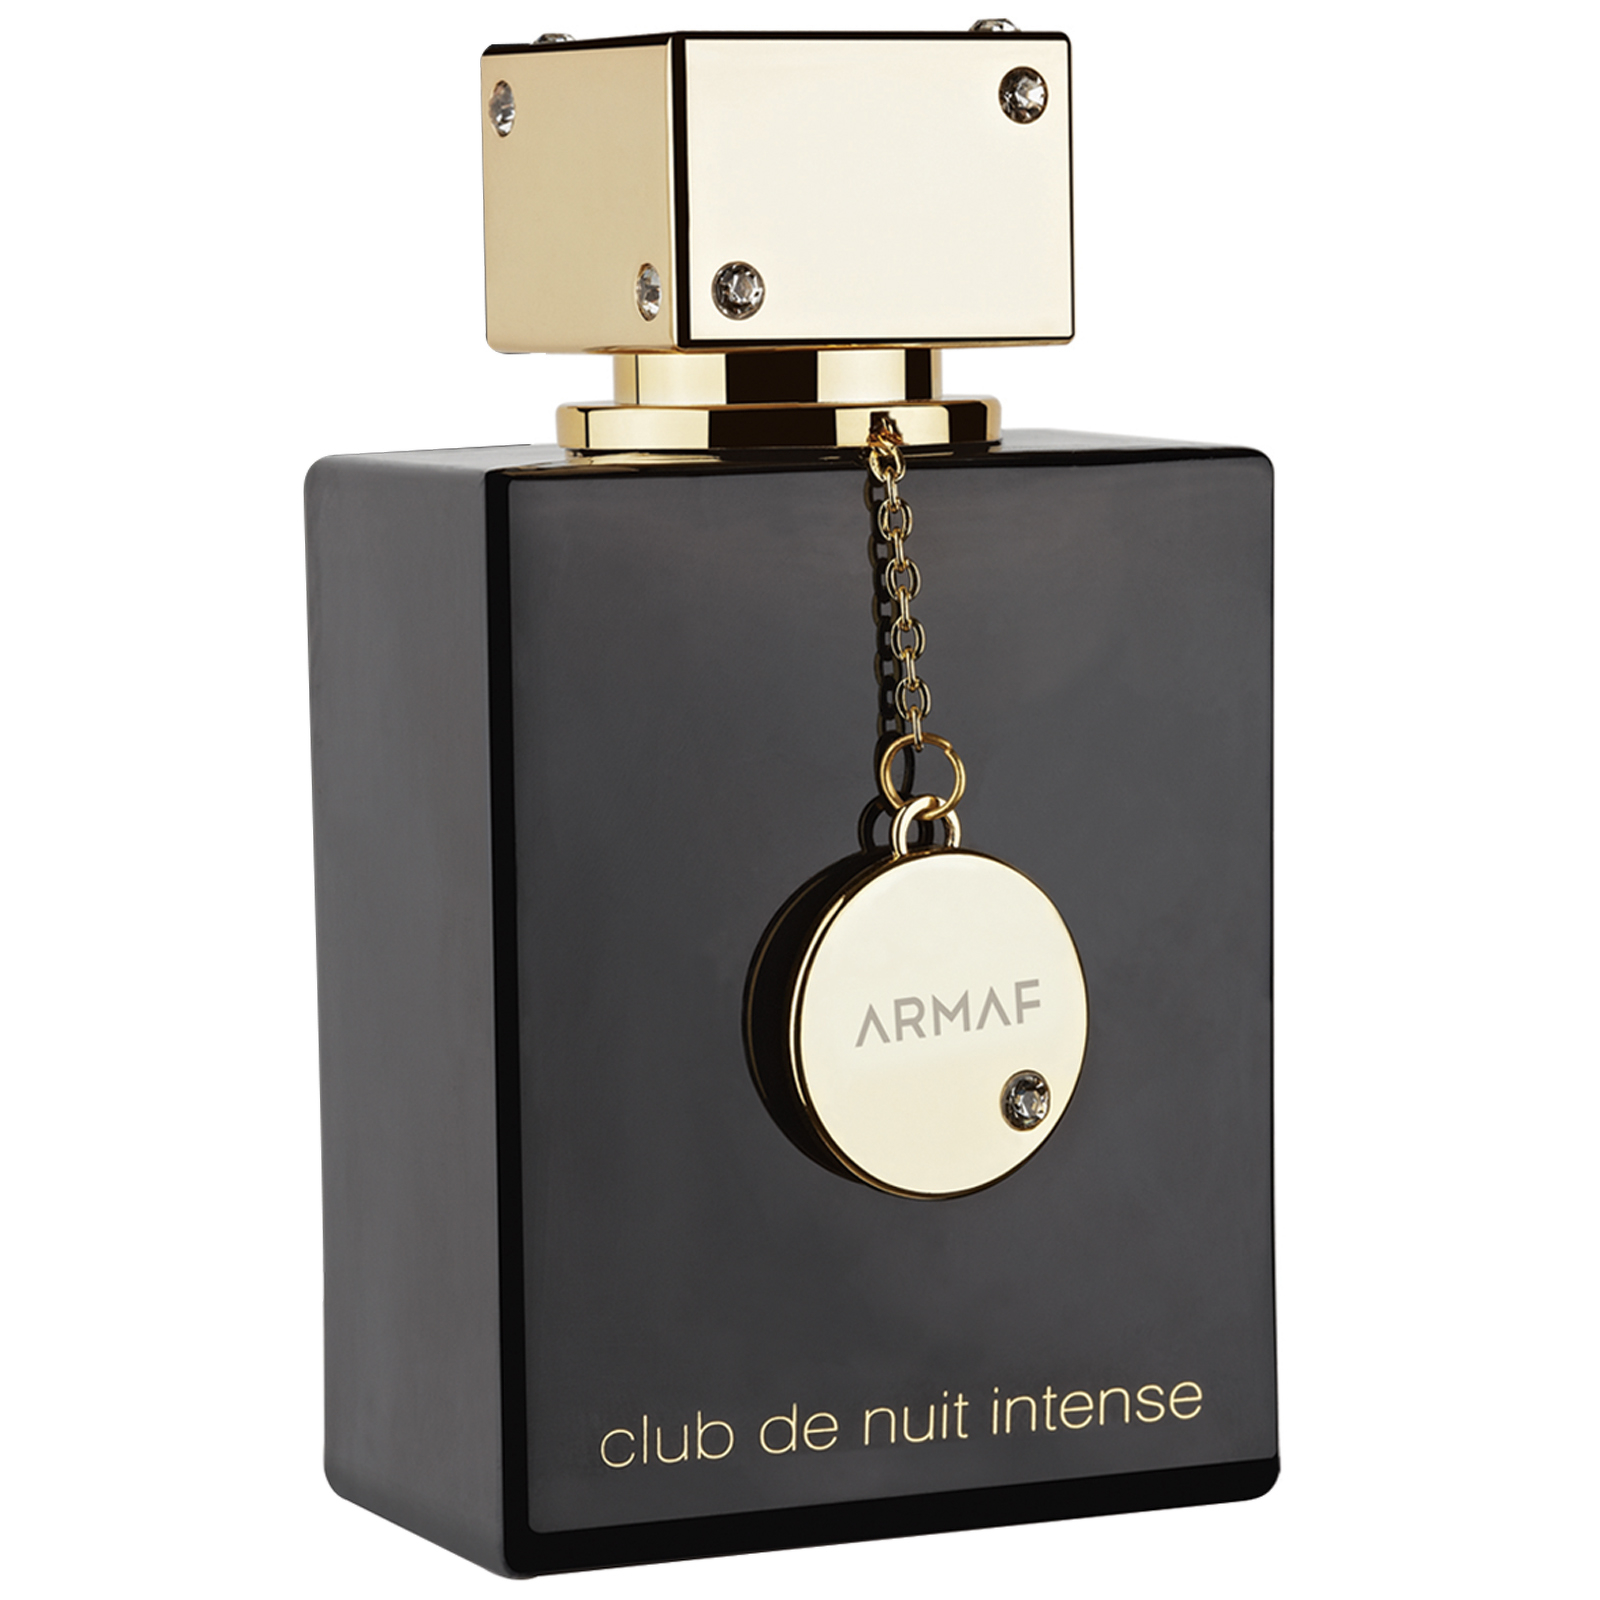 Armaf Club De Nuit Intense Woman Eau de Parfum Spray 105ml